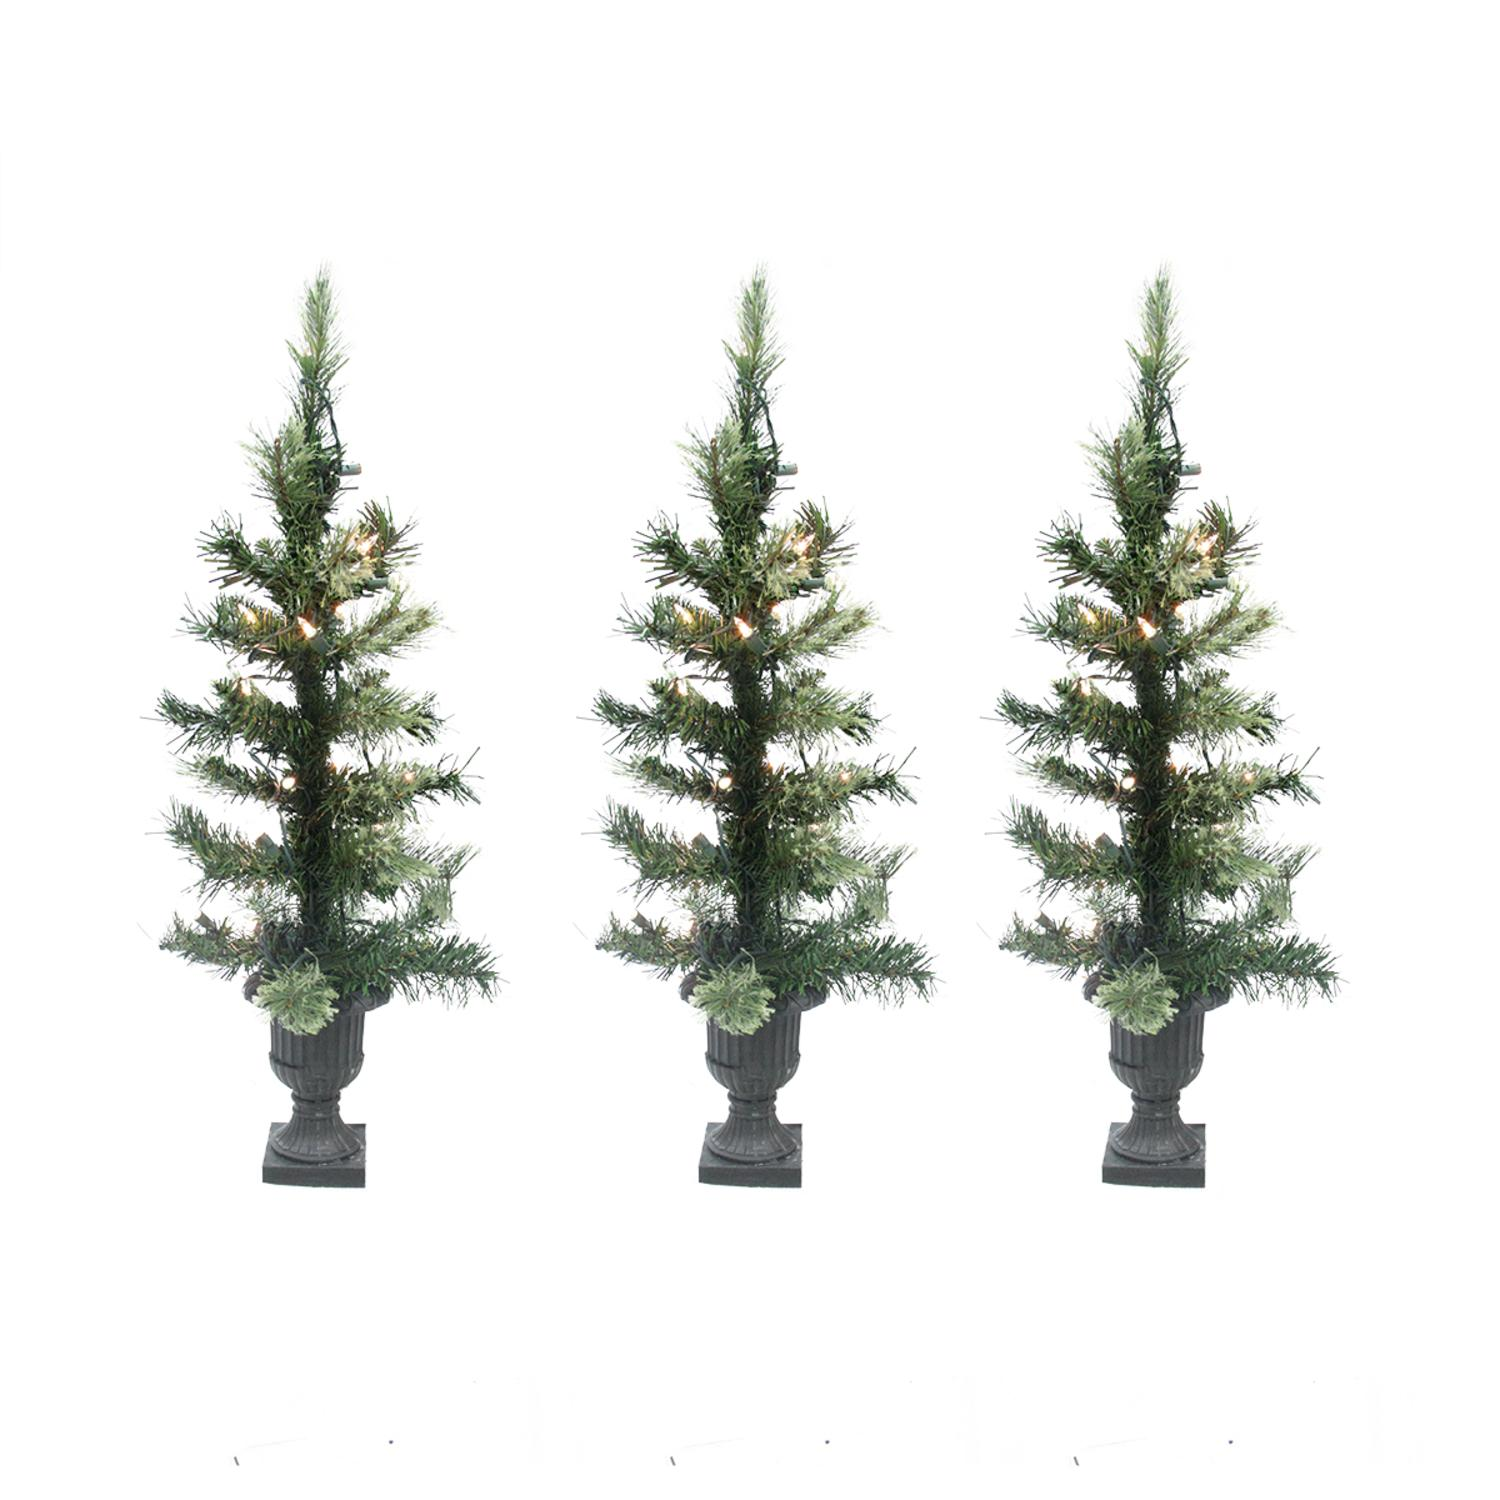 ''Set of 3 Pre-Lit CASHMERE Mix Potted Artificial Christmas Trees 24'''' - Clear Lights''